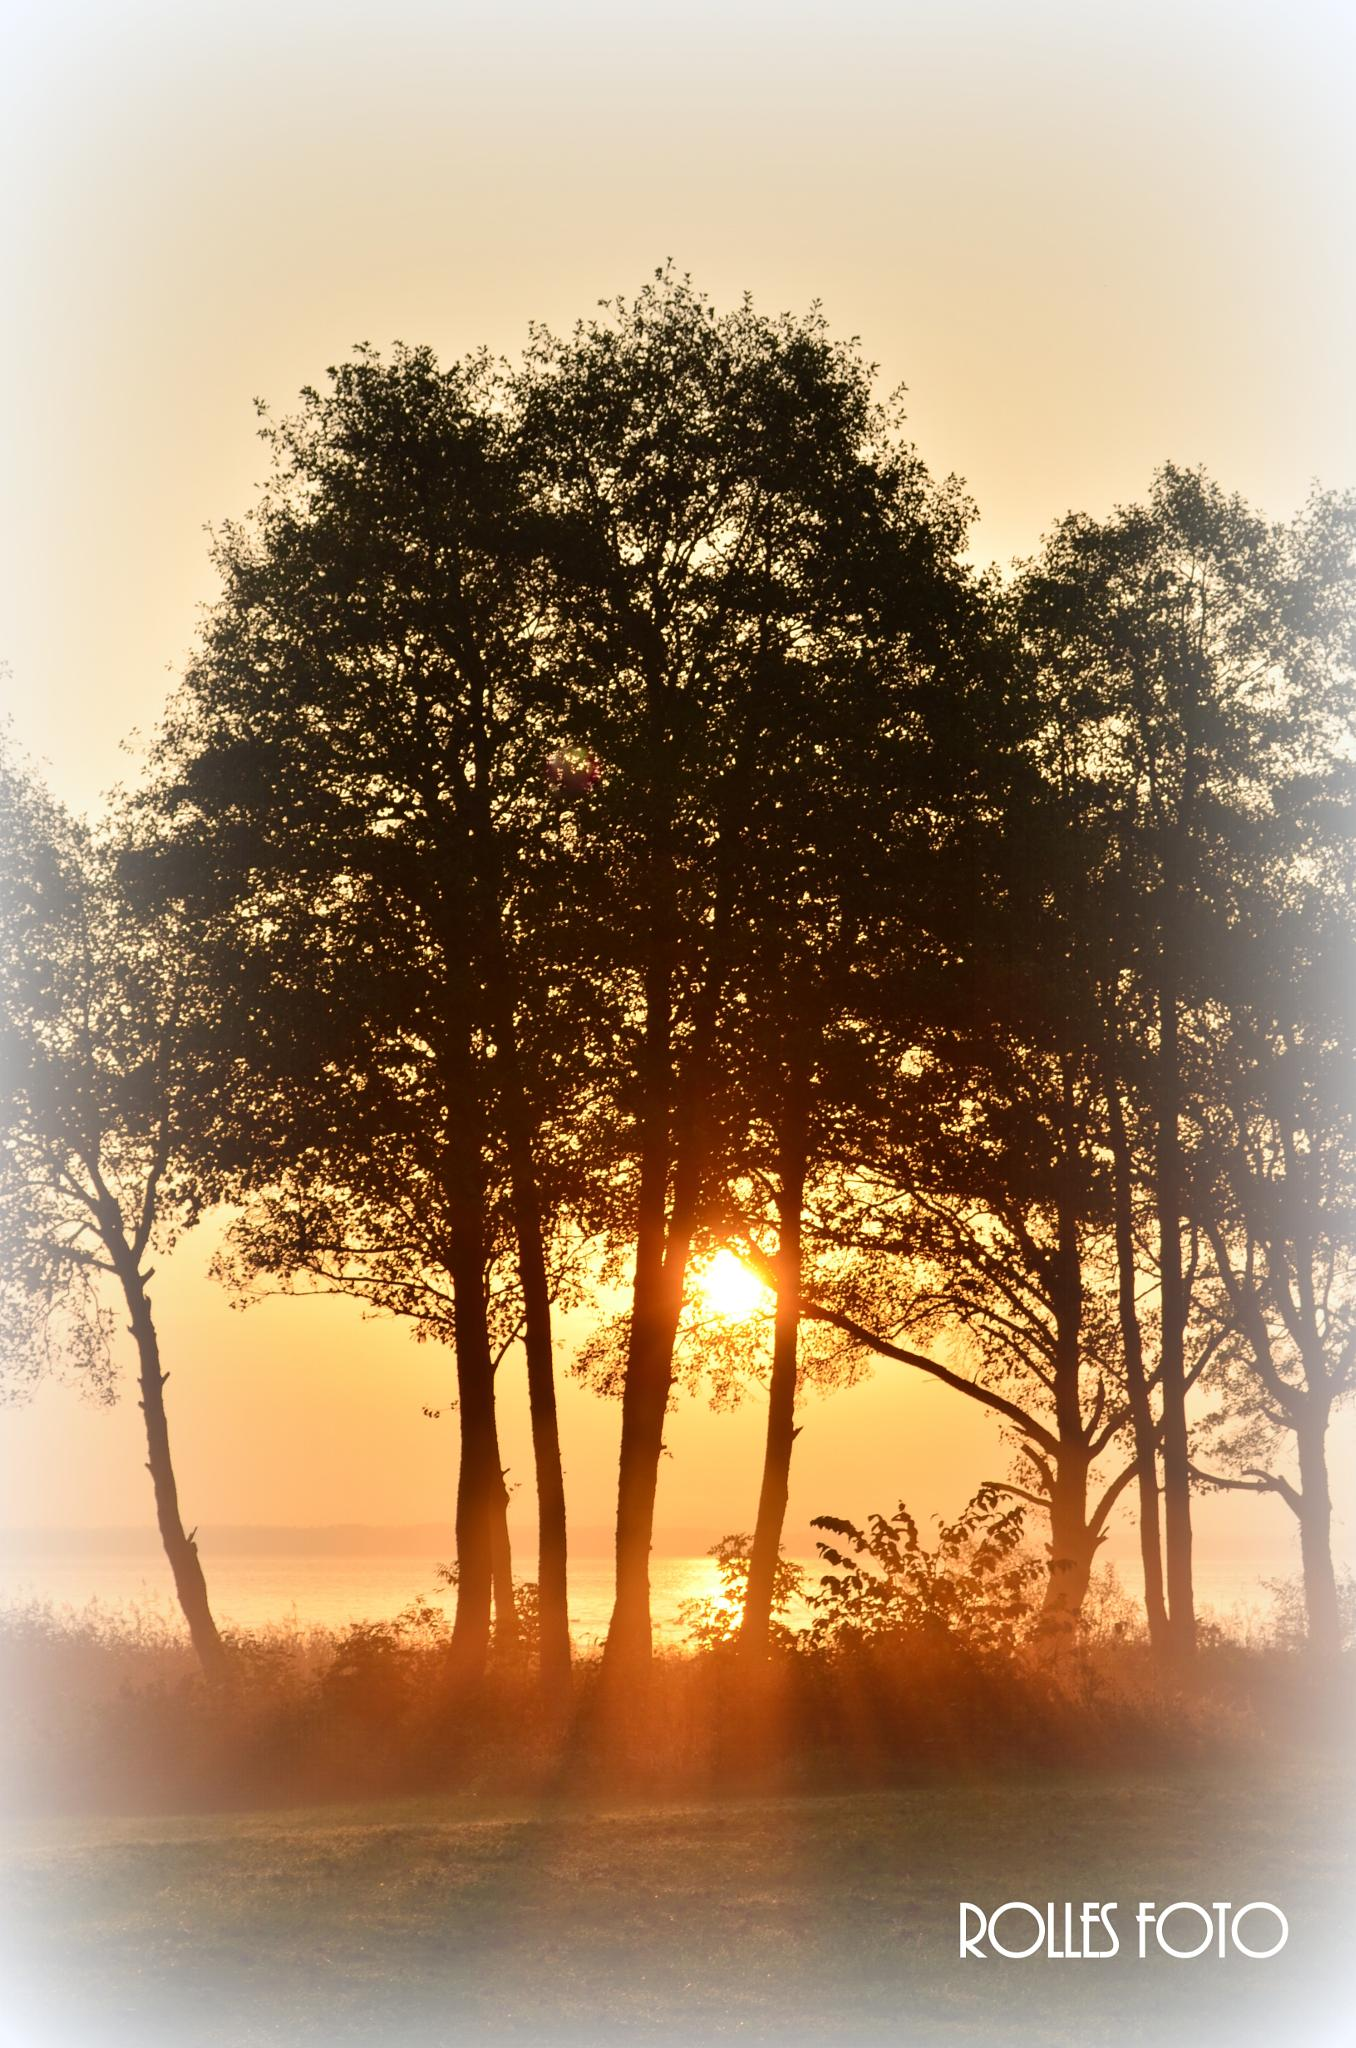 Morning by rollepersson